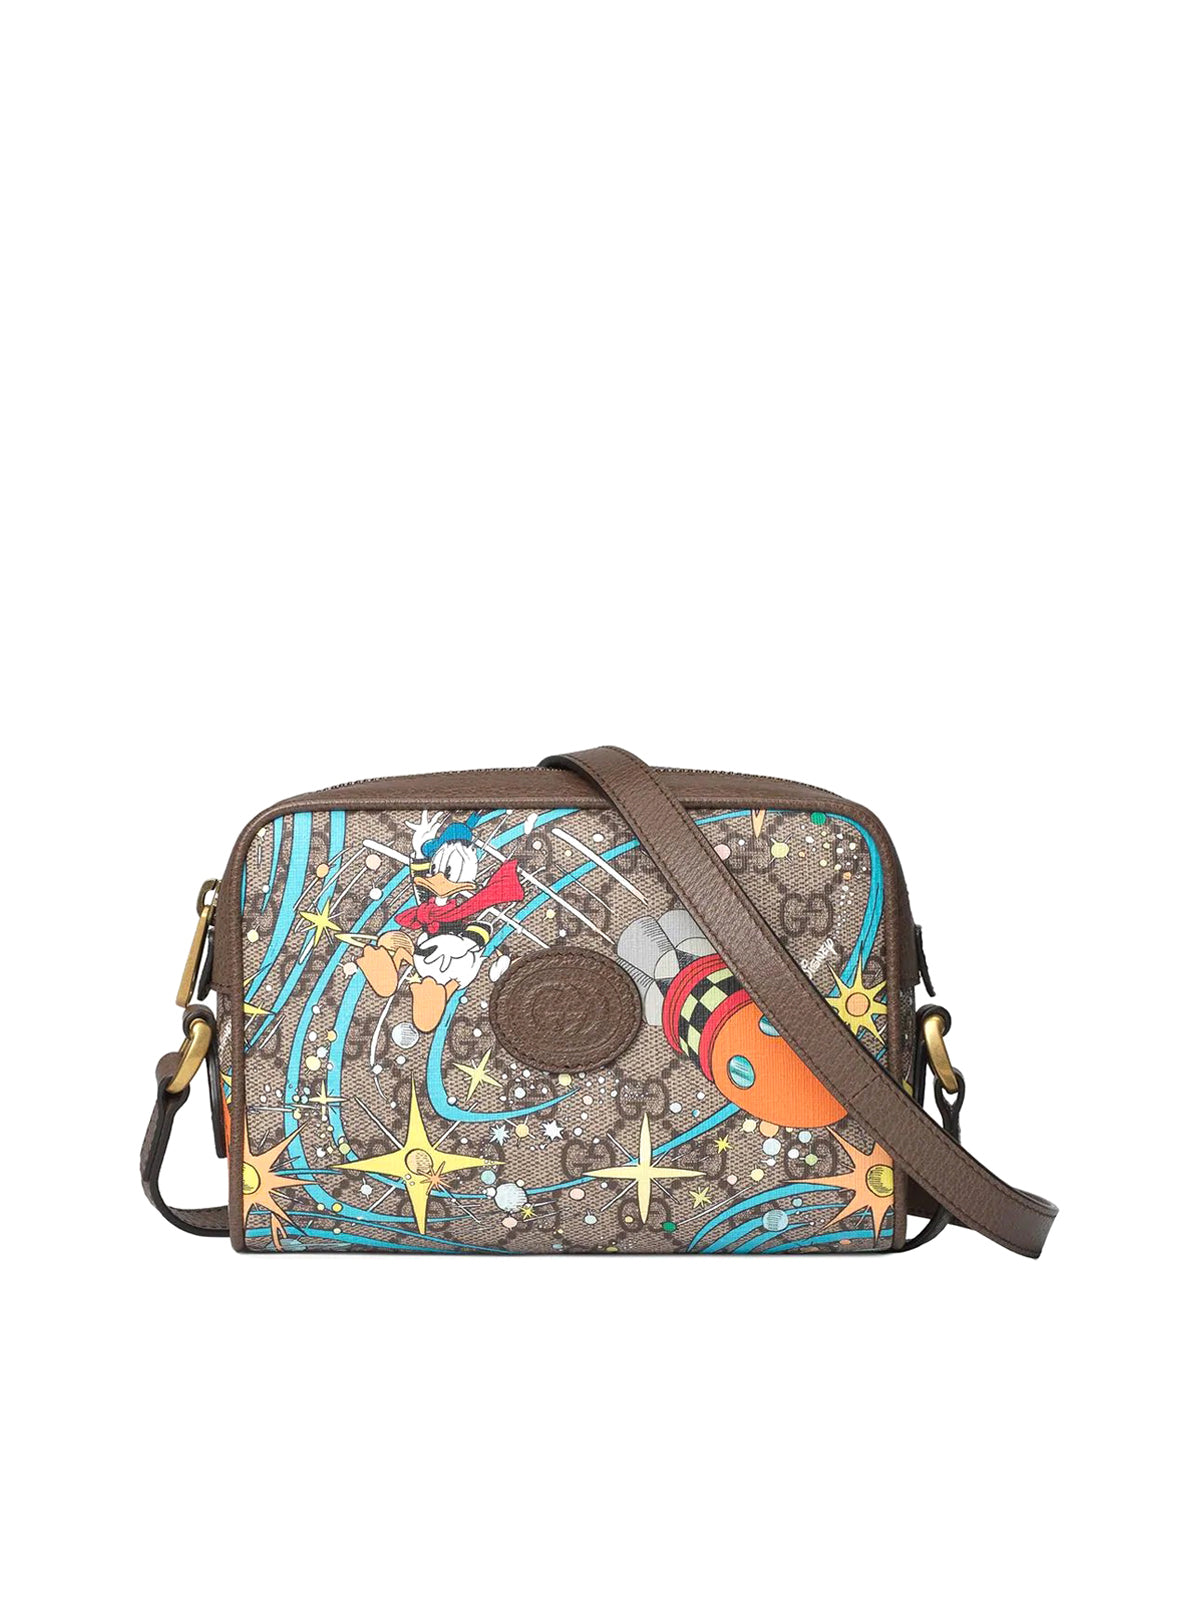 Gucci x Disney GG Supreme canvas shoulder bag